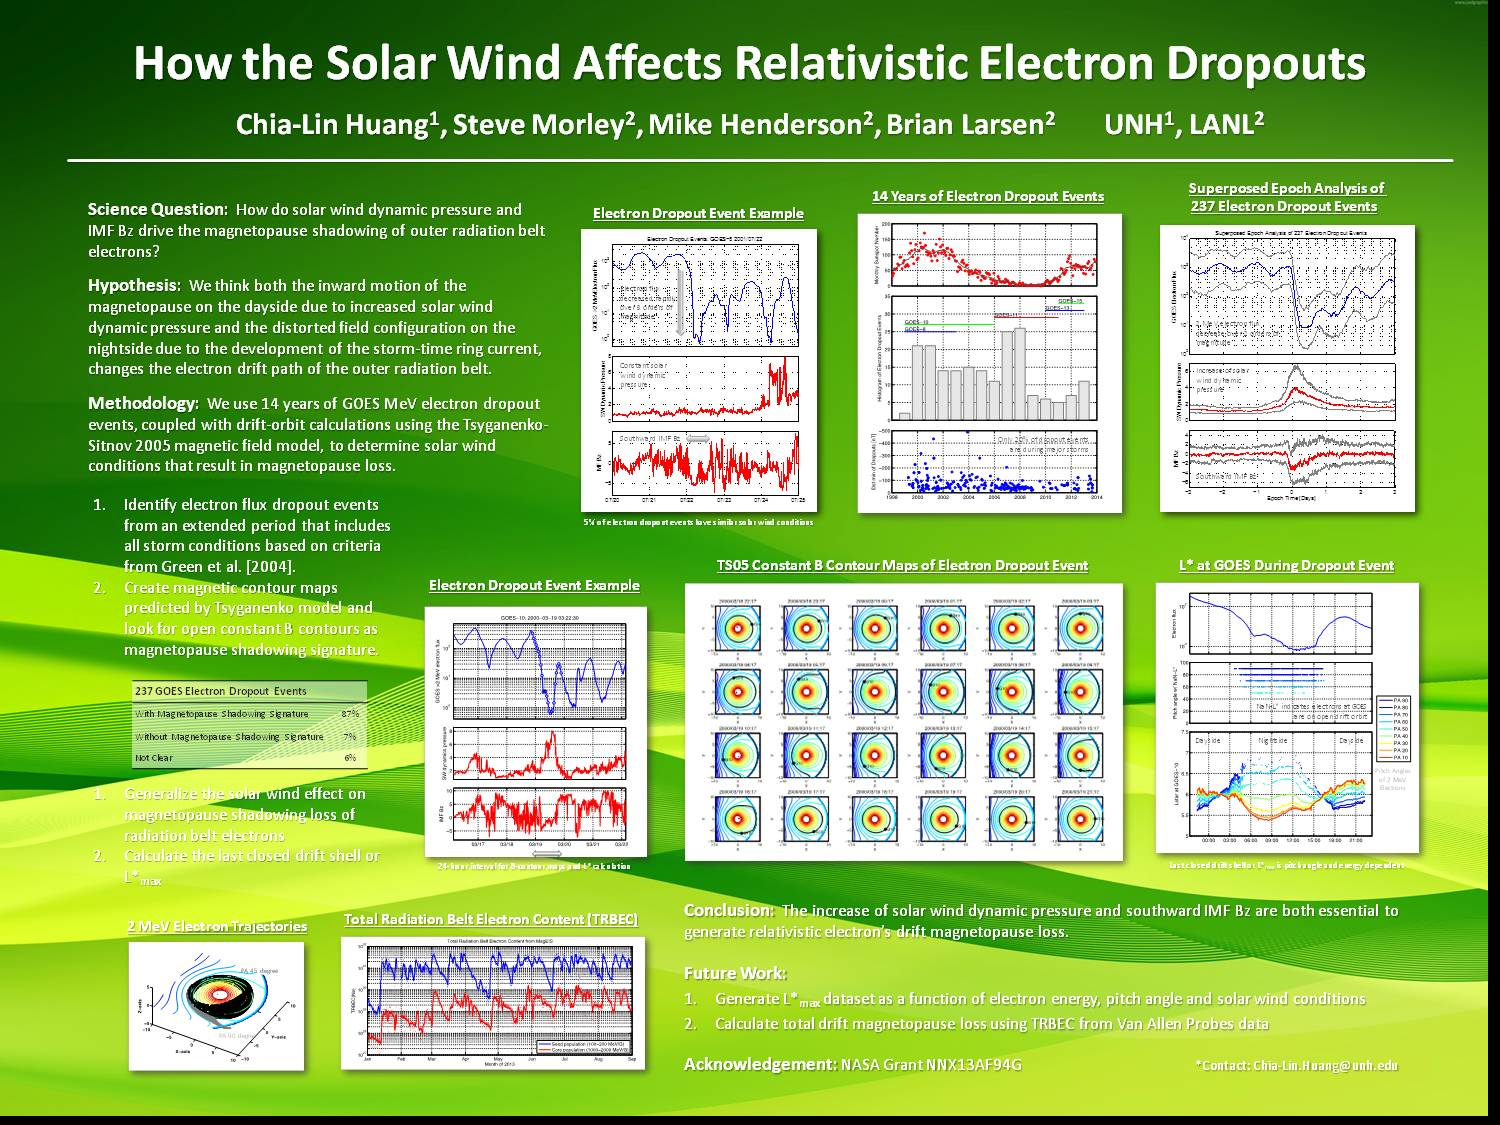 How The Solar Wind Affects Relativistic Electron Dropouts by clhuang